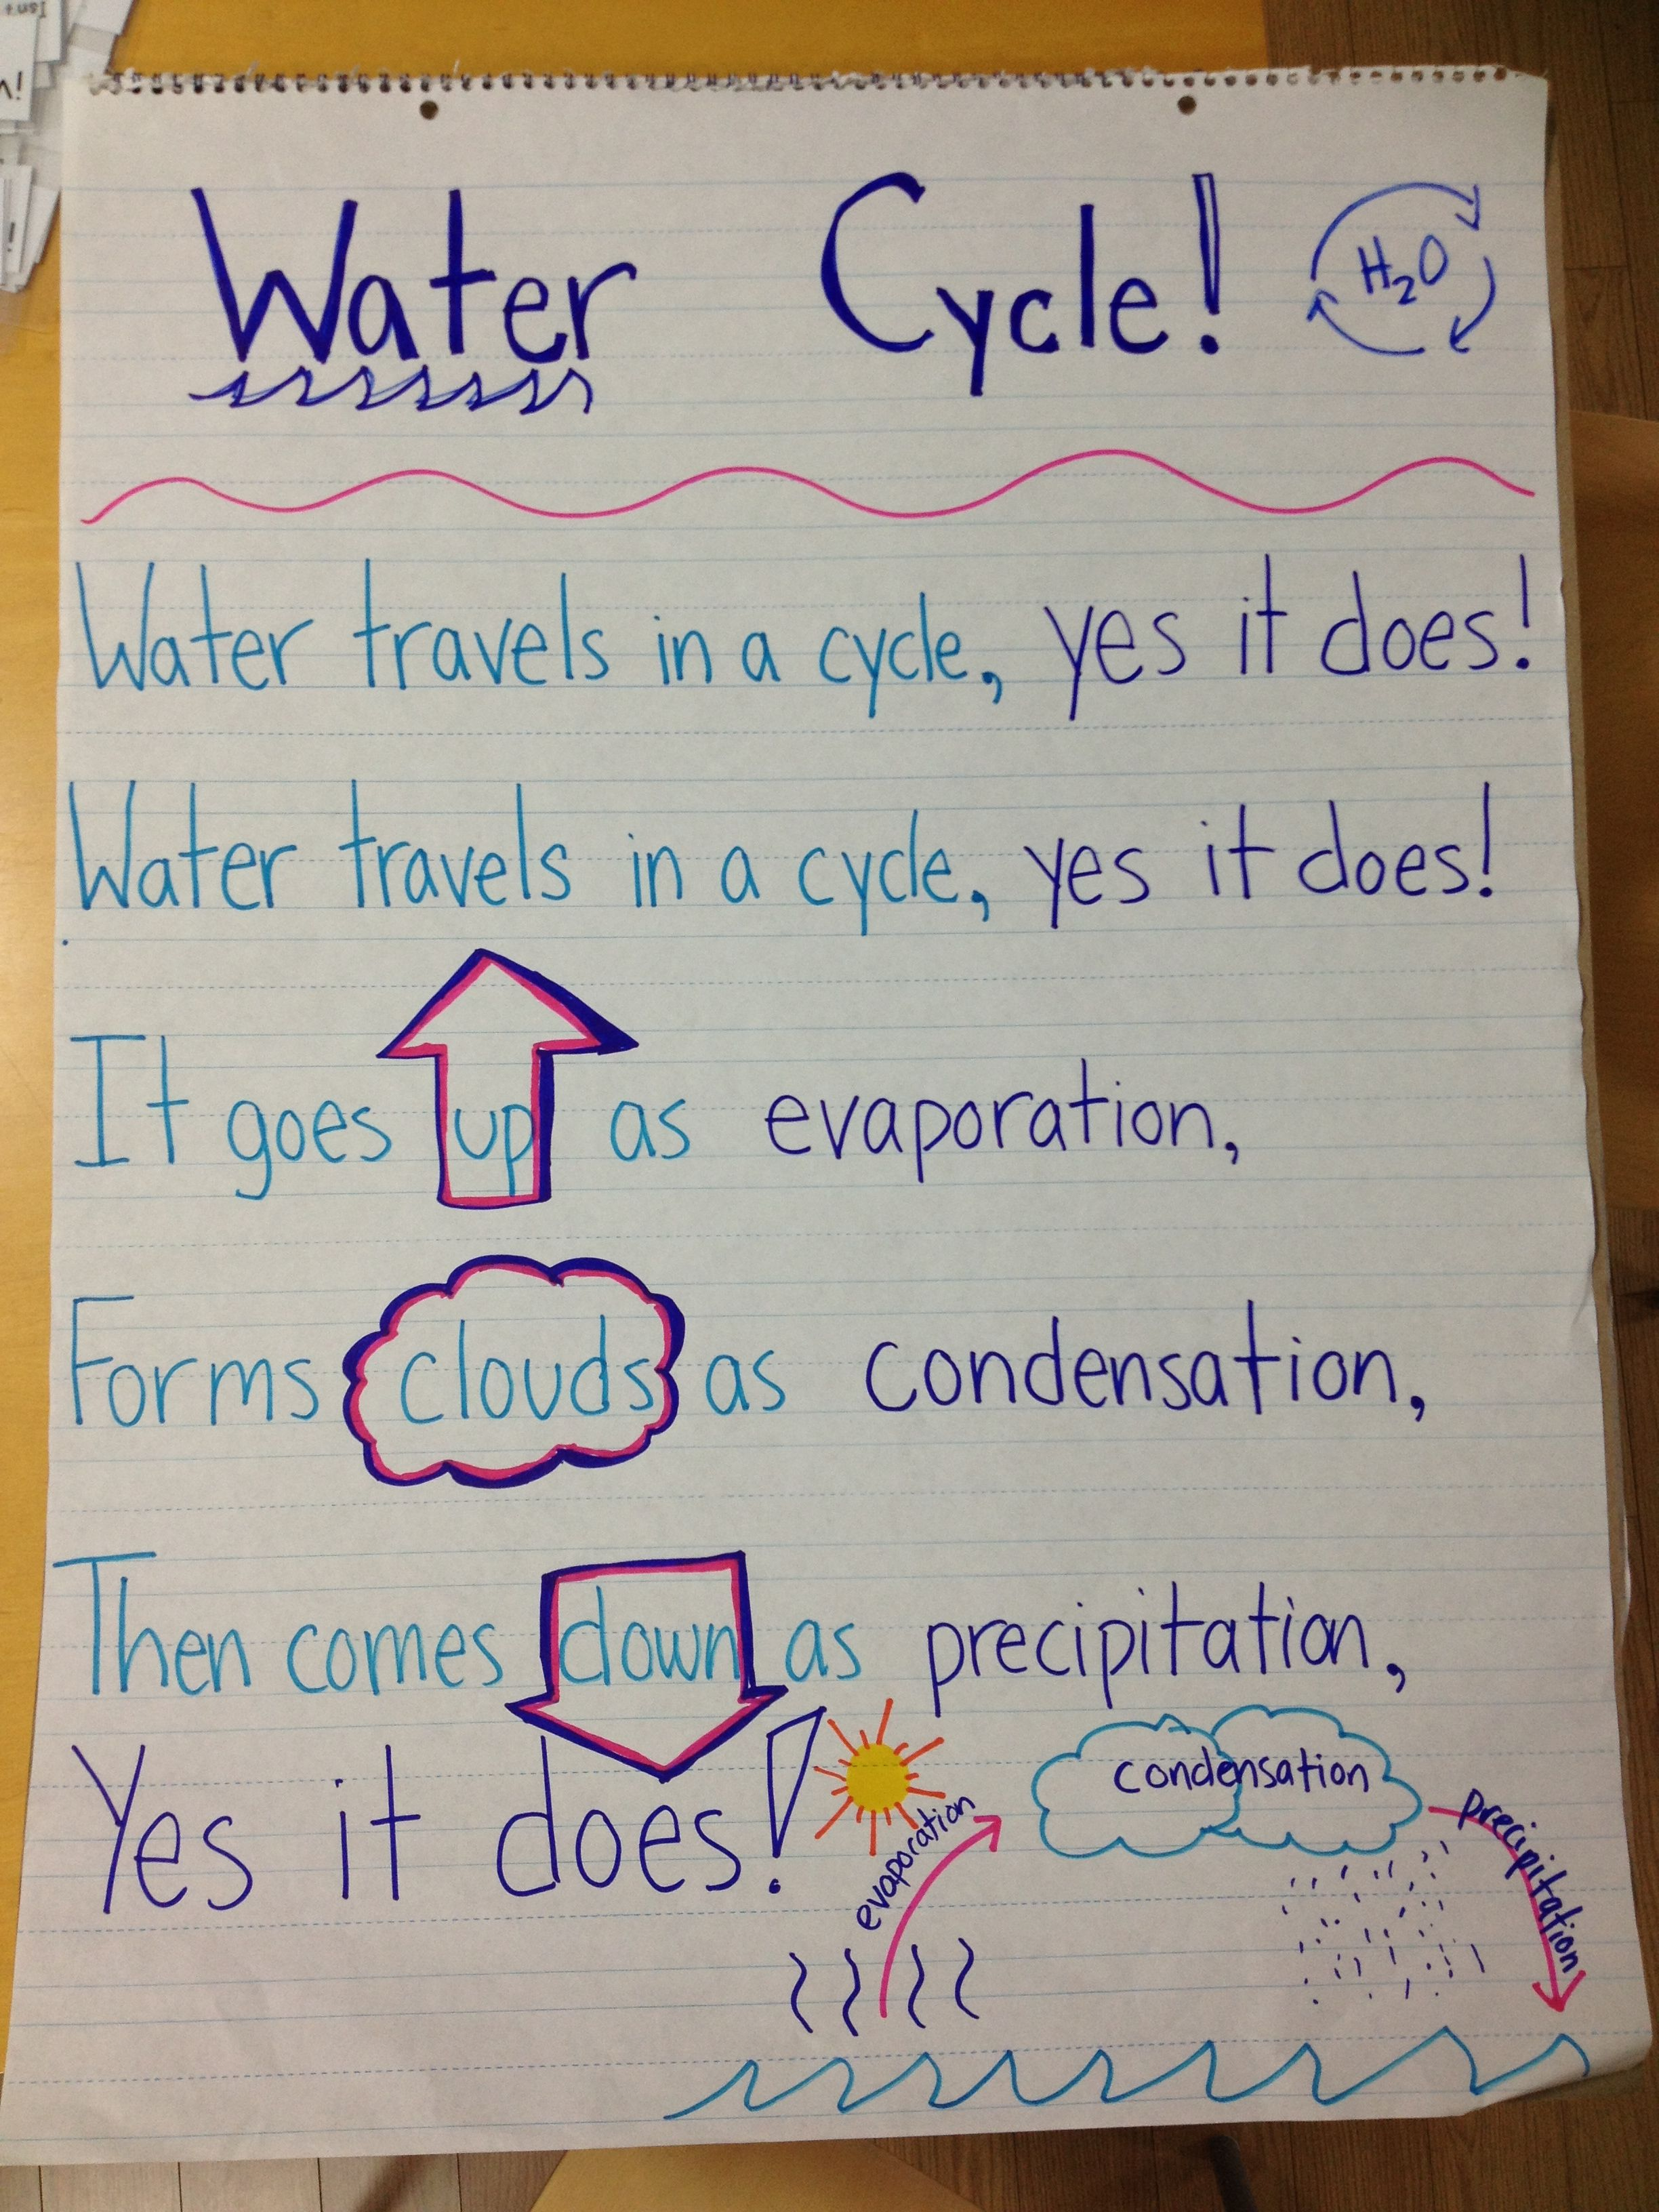 small resolution of b576a73d4a6d40425e7dbf69b14bcdcd jpg 1 200 1 600 pixels water cycle song water cycle project water